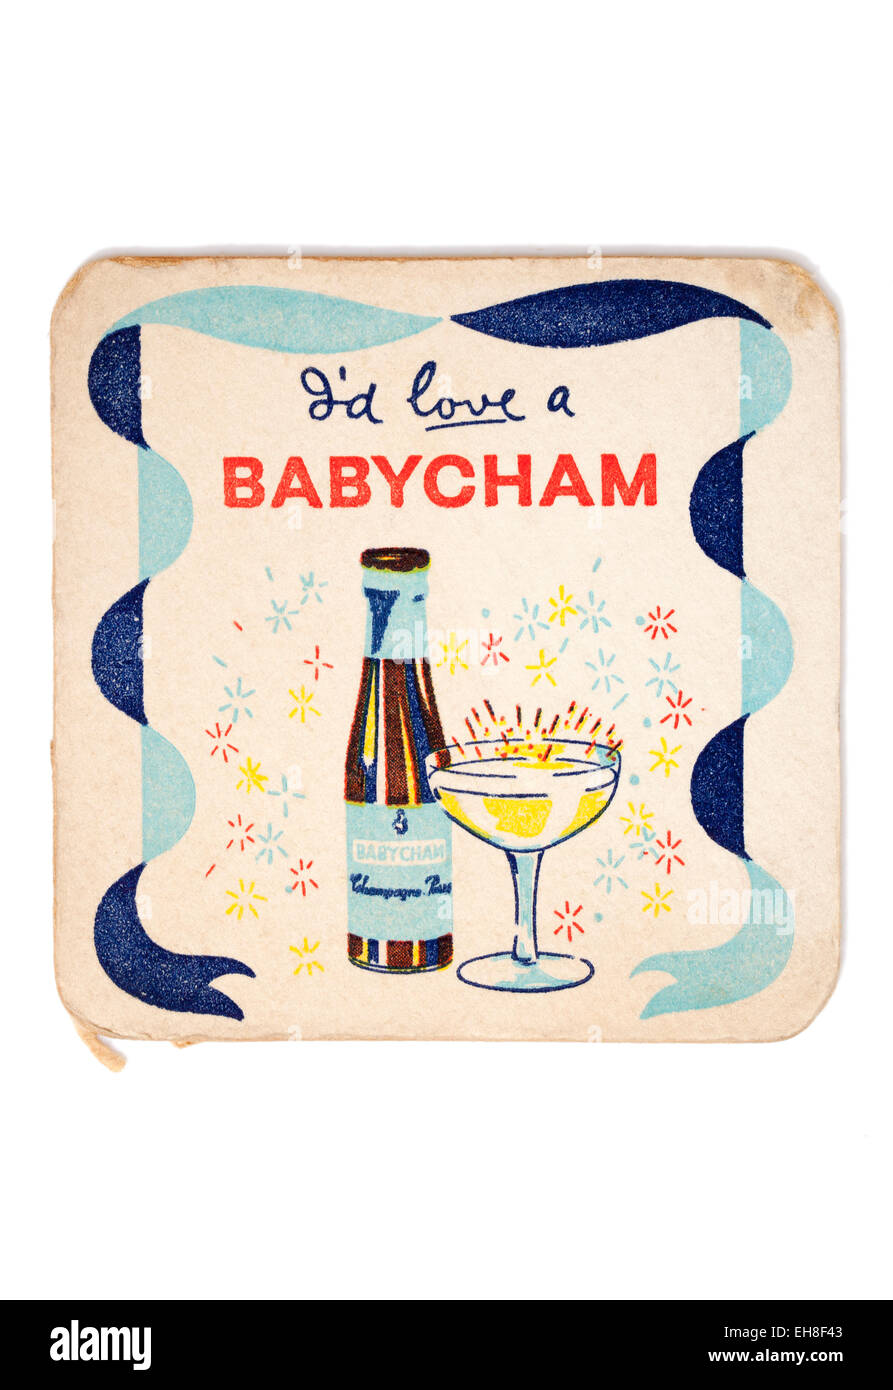 Vintage Beermat Advertising Babycham Drink - Stock Image